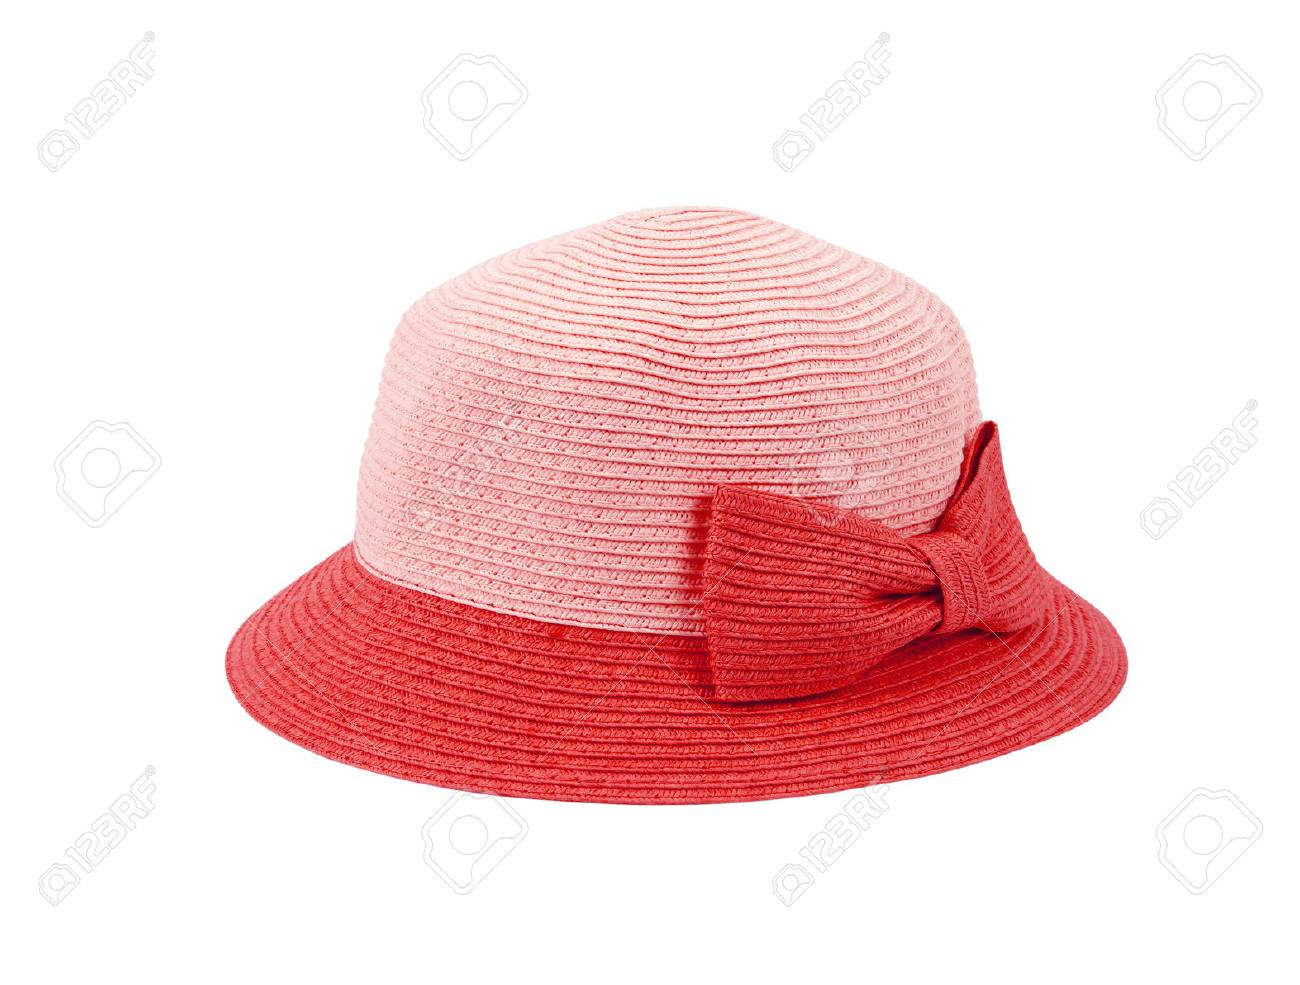 red straw hat for ladies on a white background Stock Photo - 33590490 9d71c962bde